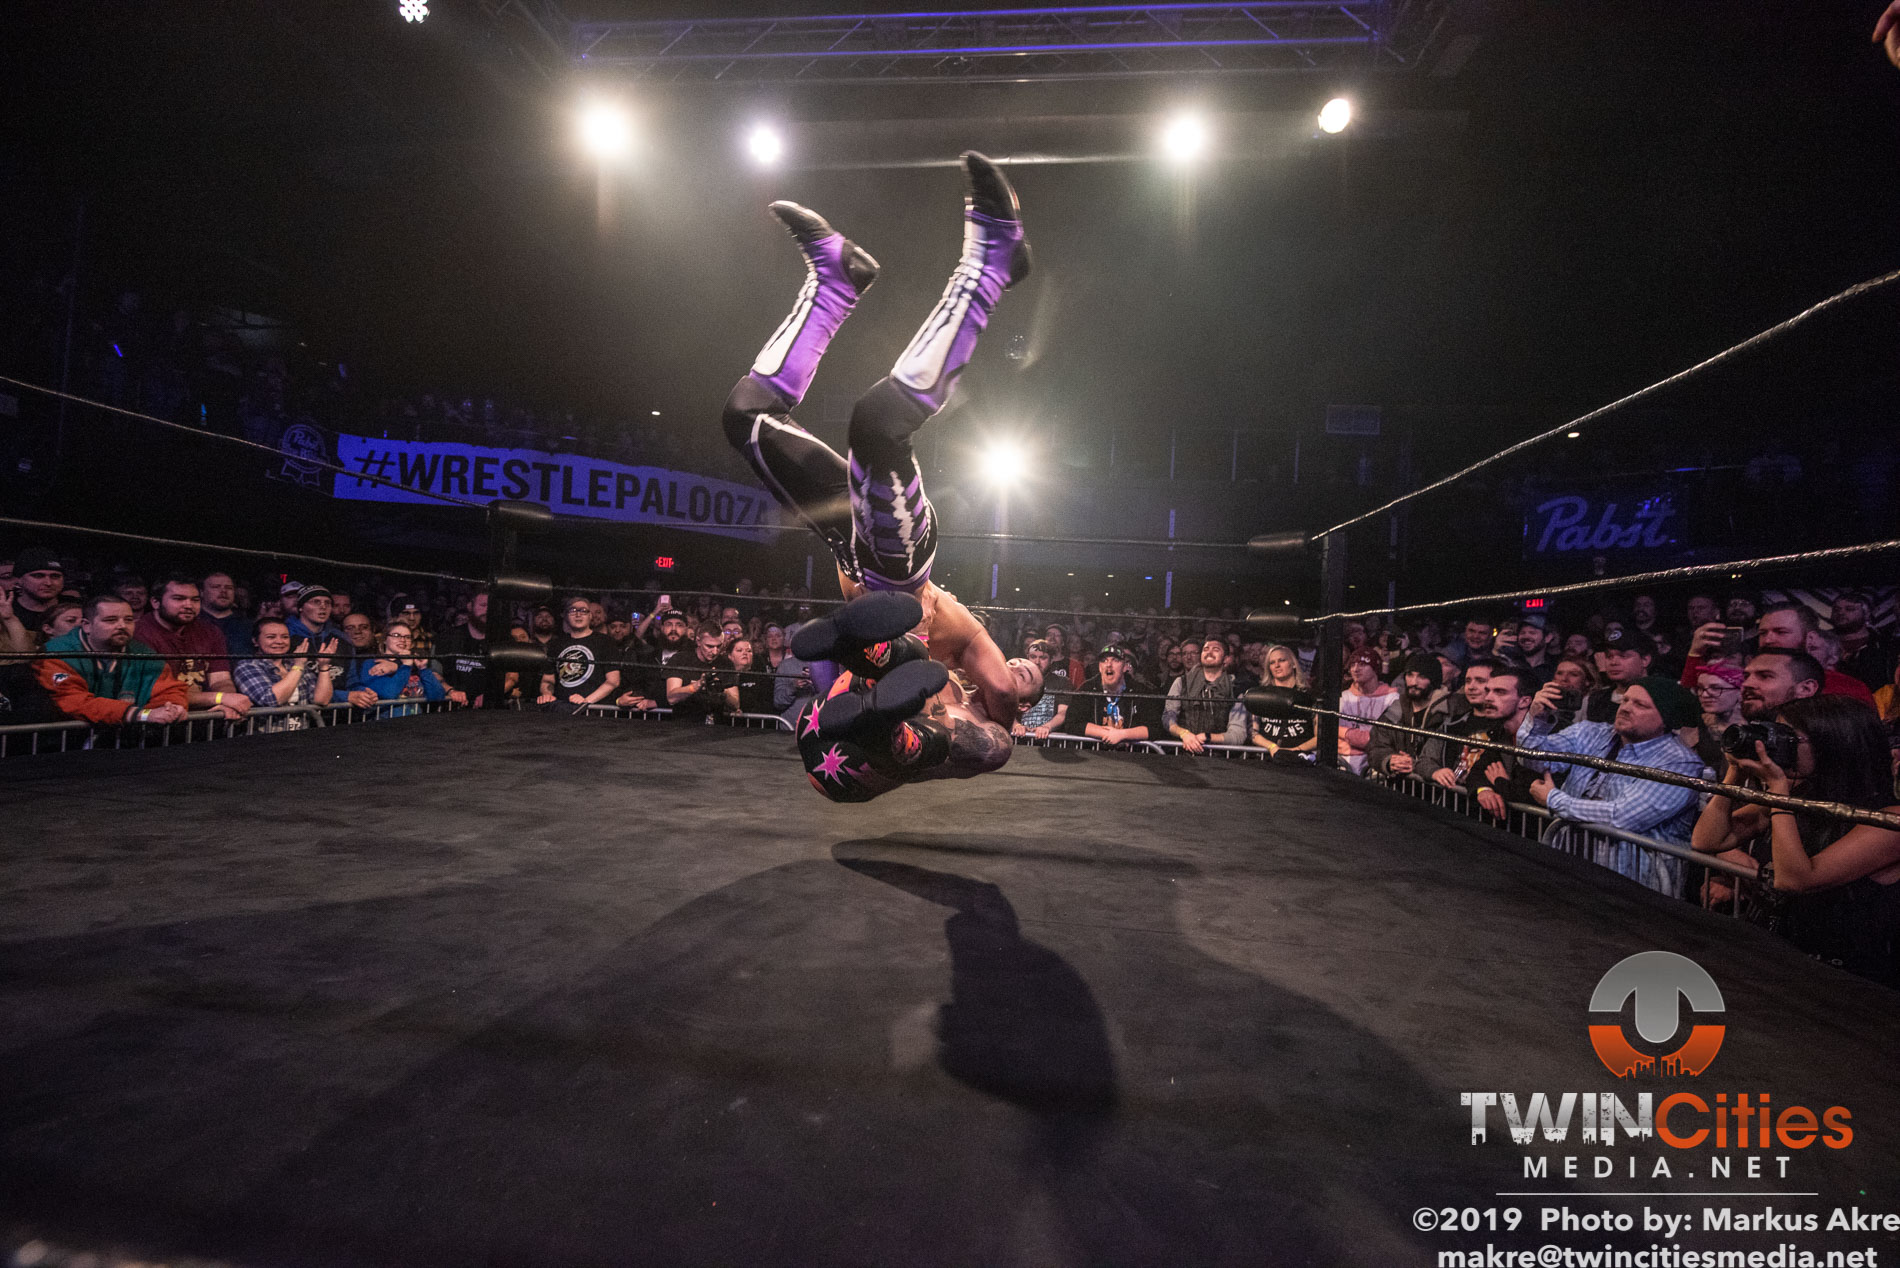 Wrestlepalooza - Match 6-12